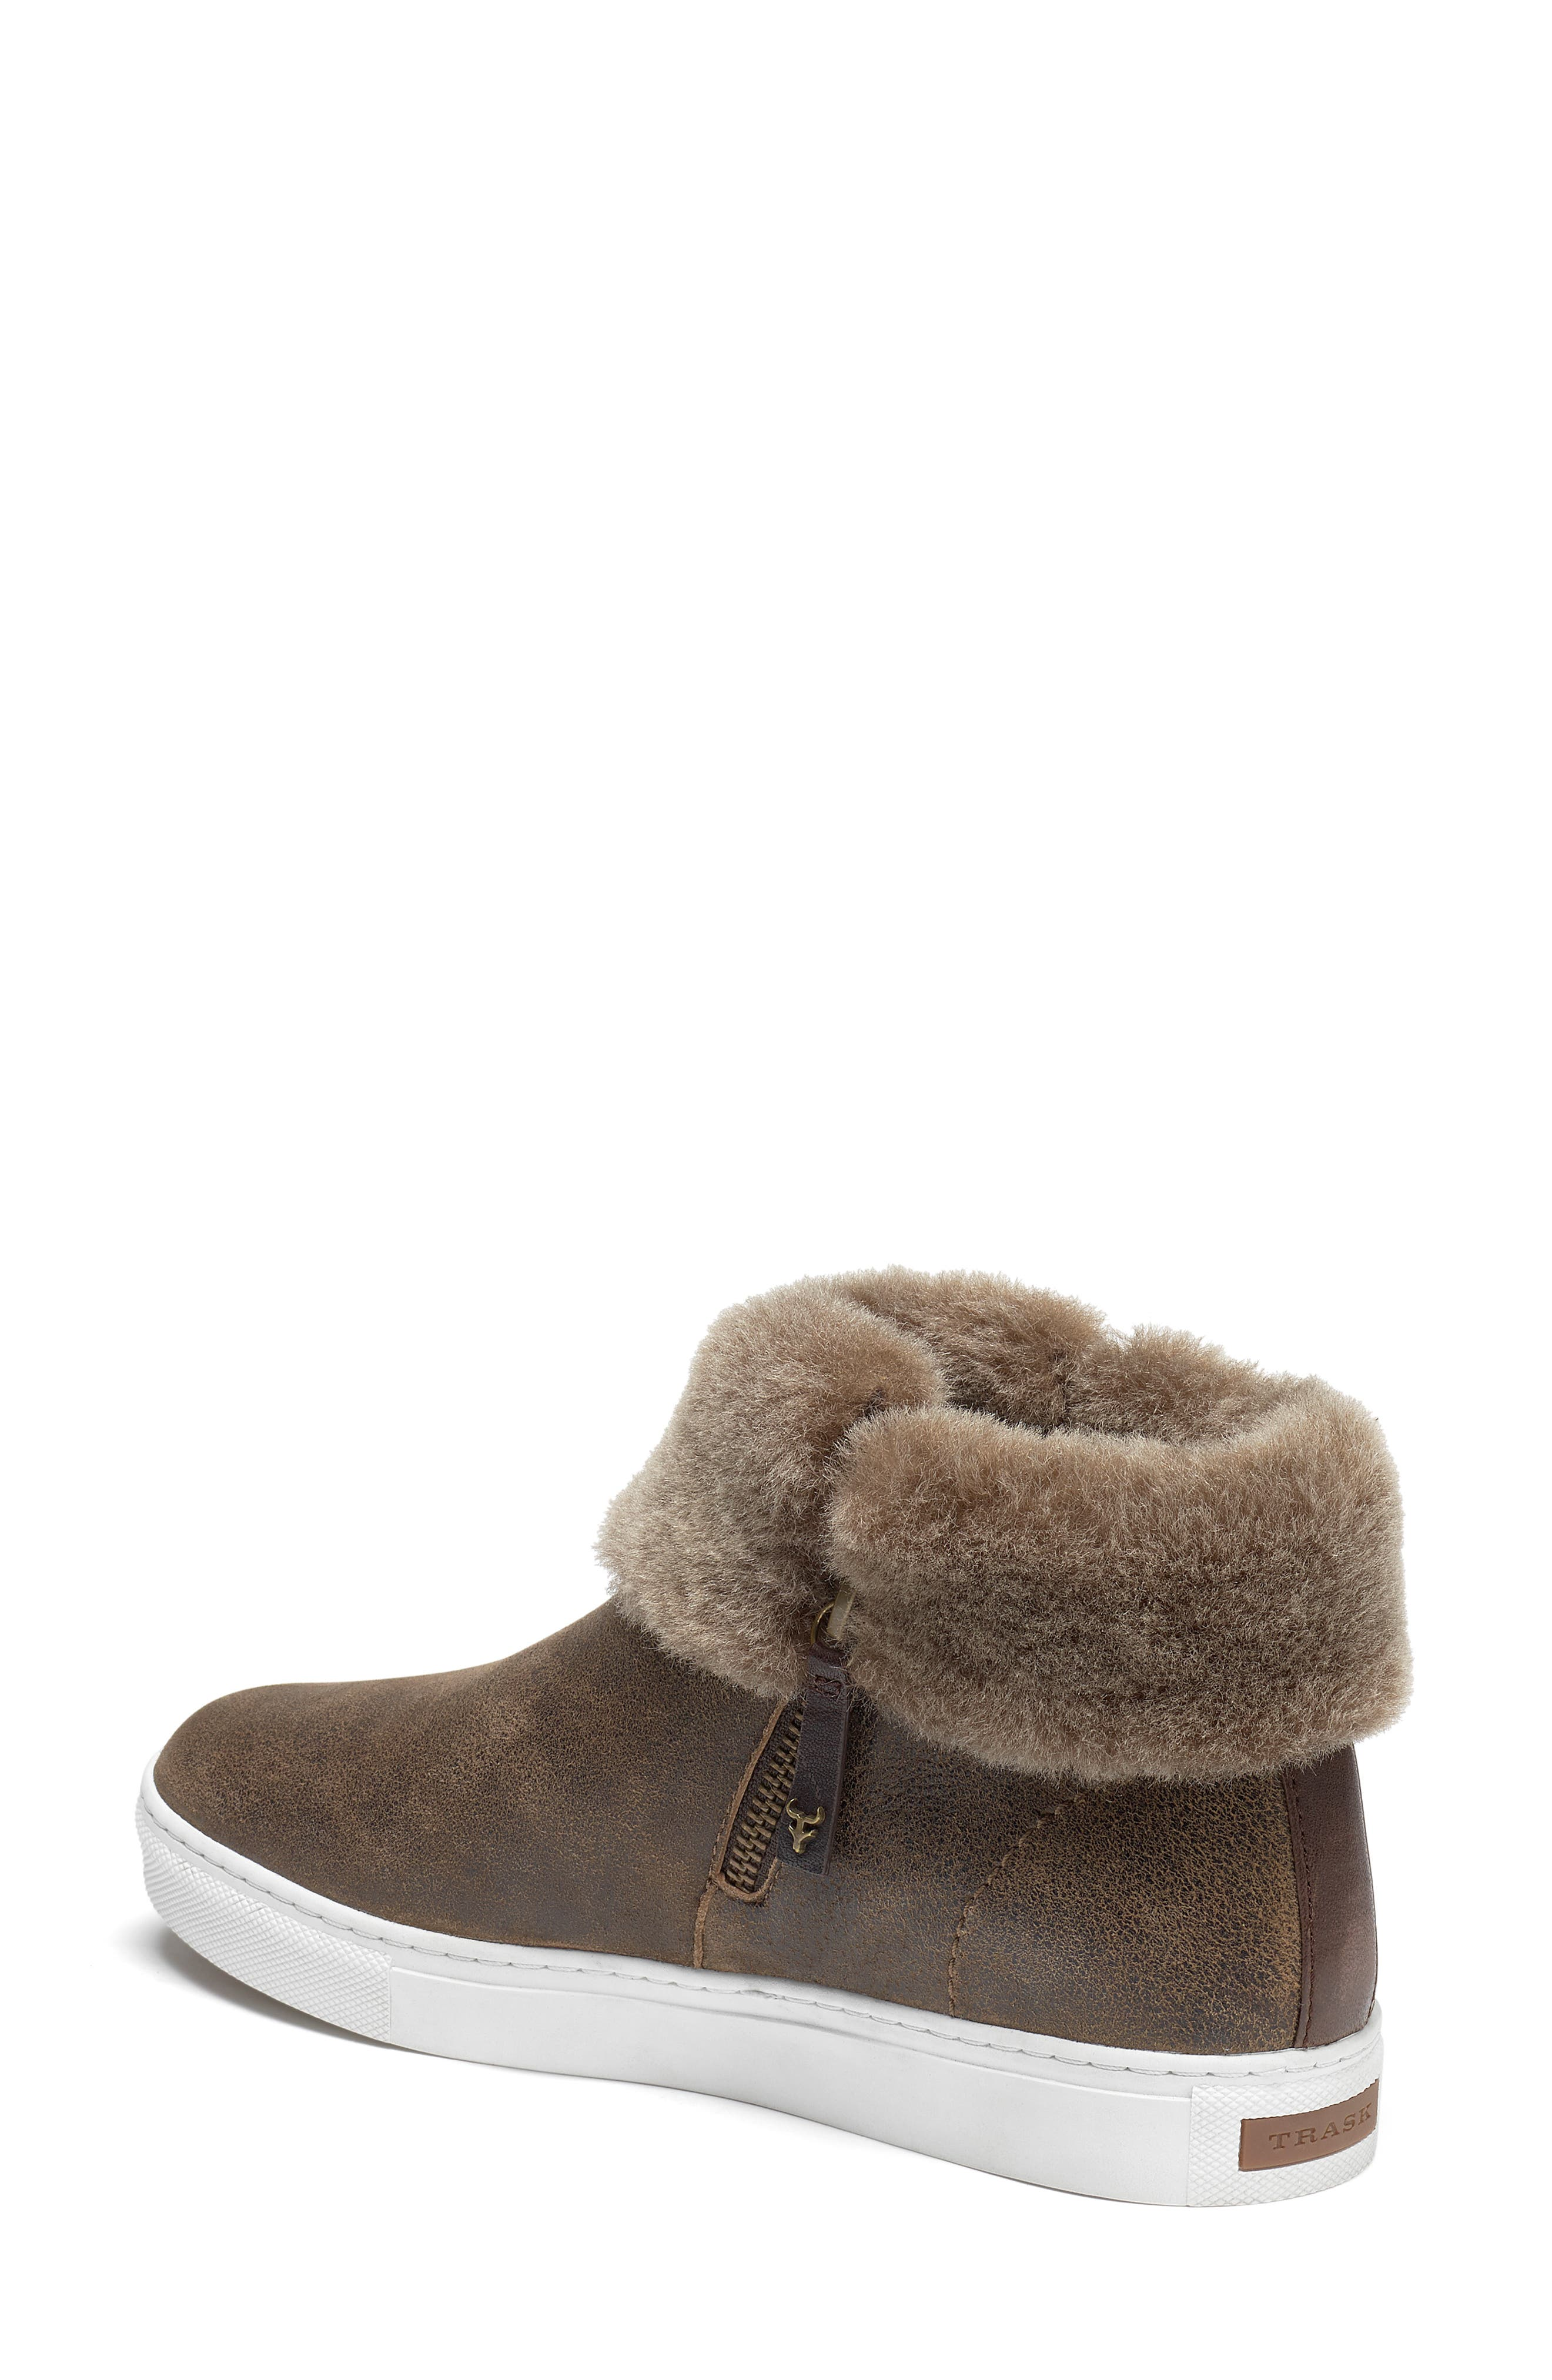 TRASK, Lexi Genuine Shearling Sneaker, Alternate thumbnail 2, color, BROWN LEATHER